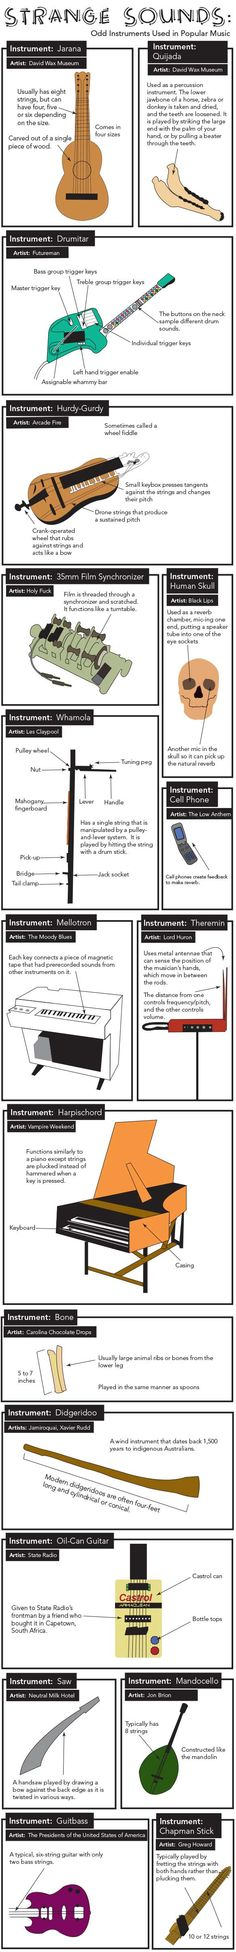 Odd Instruments Used in Popular Music via http://www.pastemagazine.com/articles/2012/07/infographic-strange-sounds-odd-instruments-used-in.html?utm_source=twitterfeed_medium=twitter